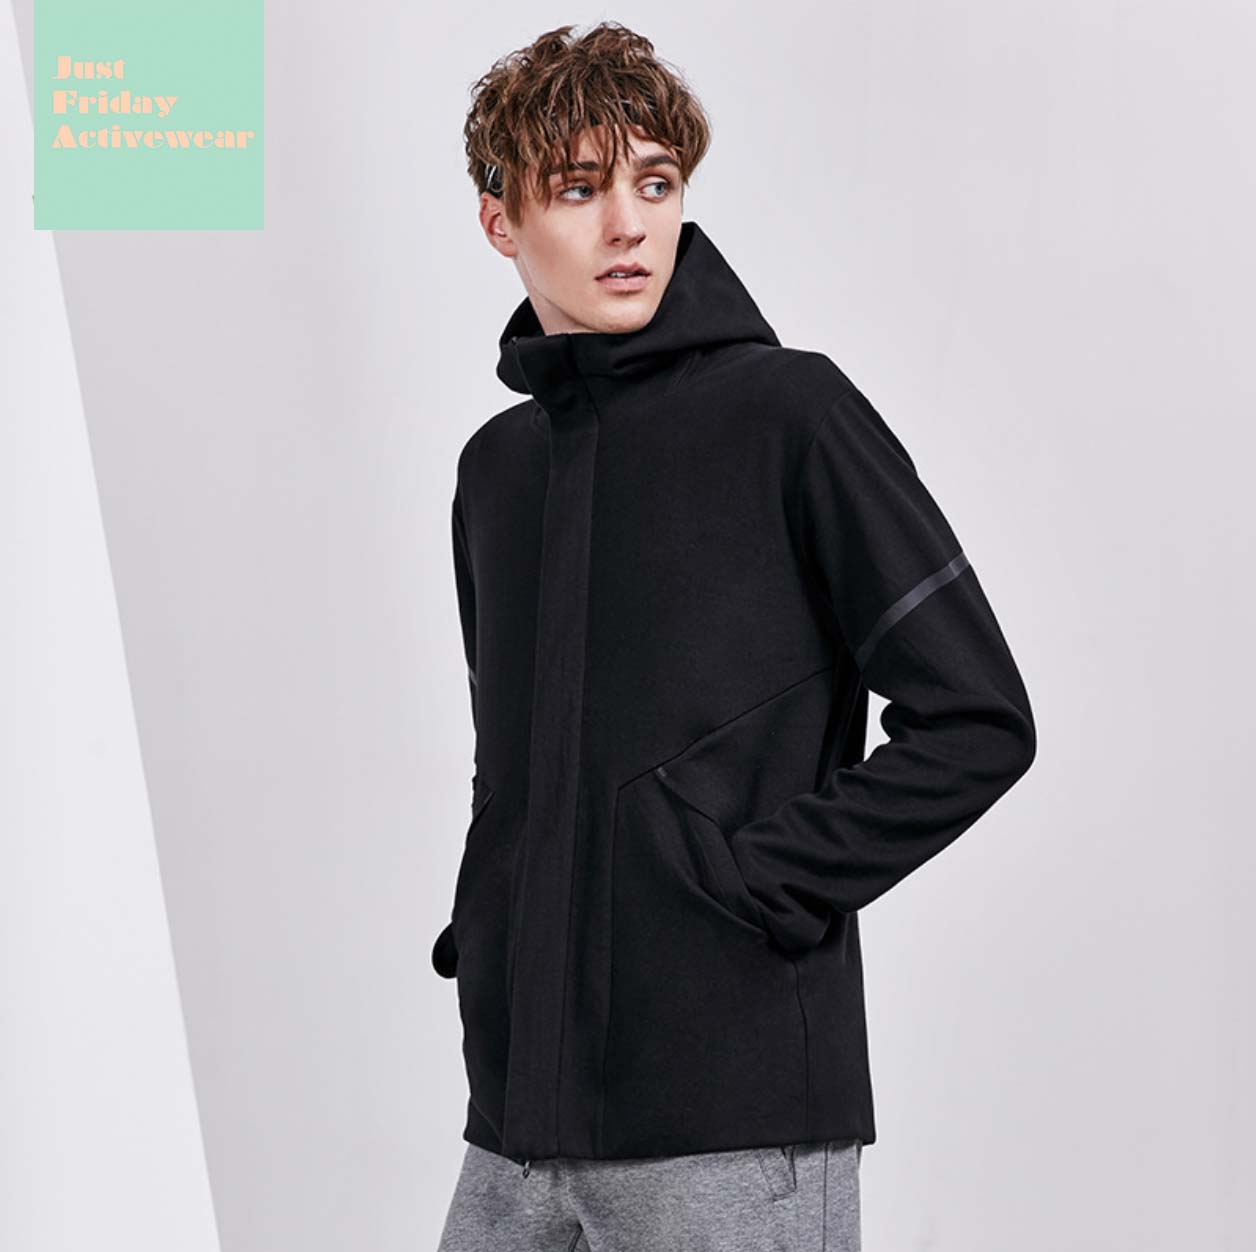 Causal Black Front Zip Up Closure Long Sleeves Side Pocket Hoodie